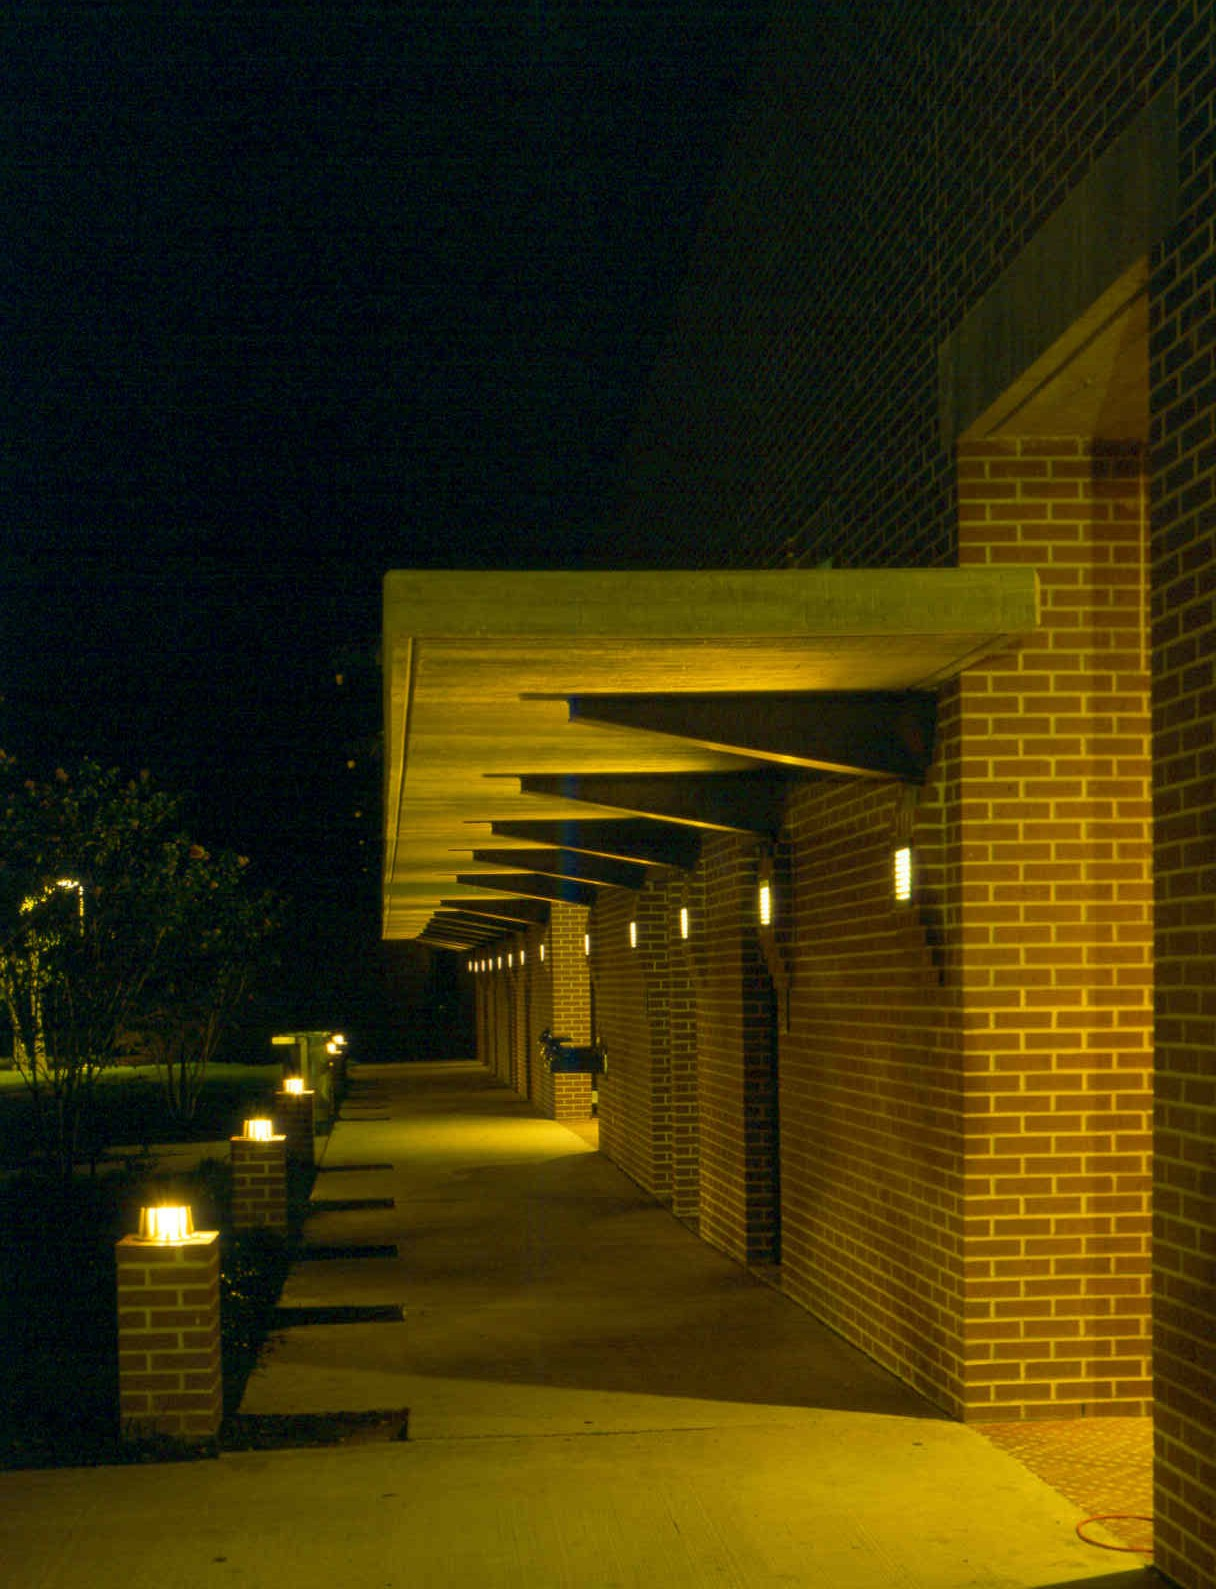 colorado county - night loggia.jpg